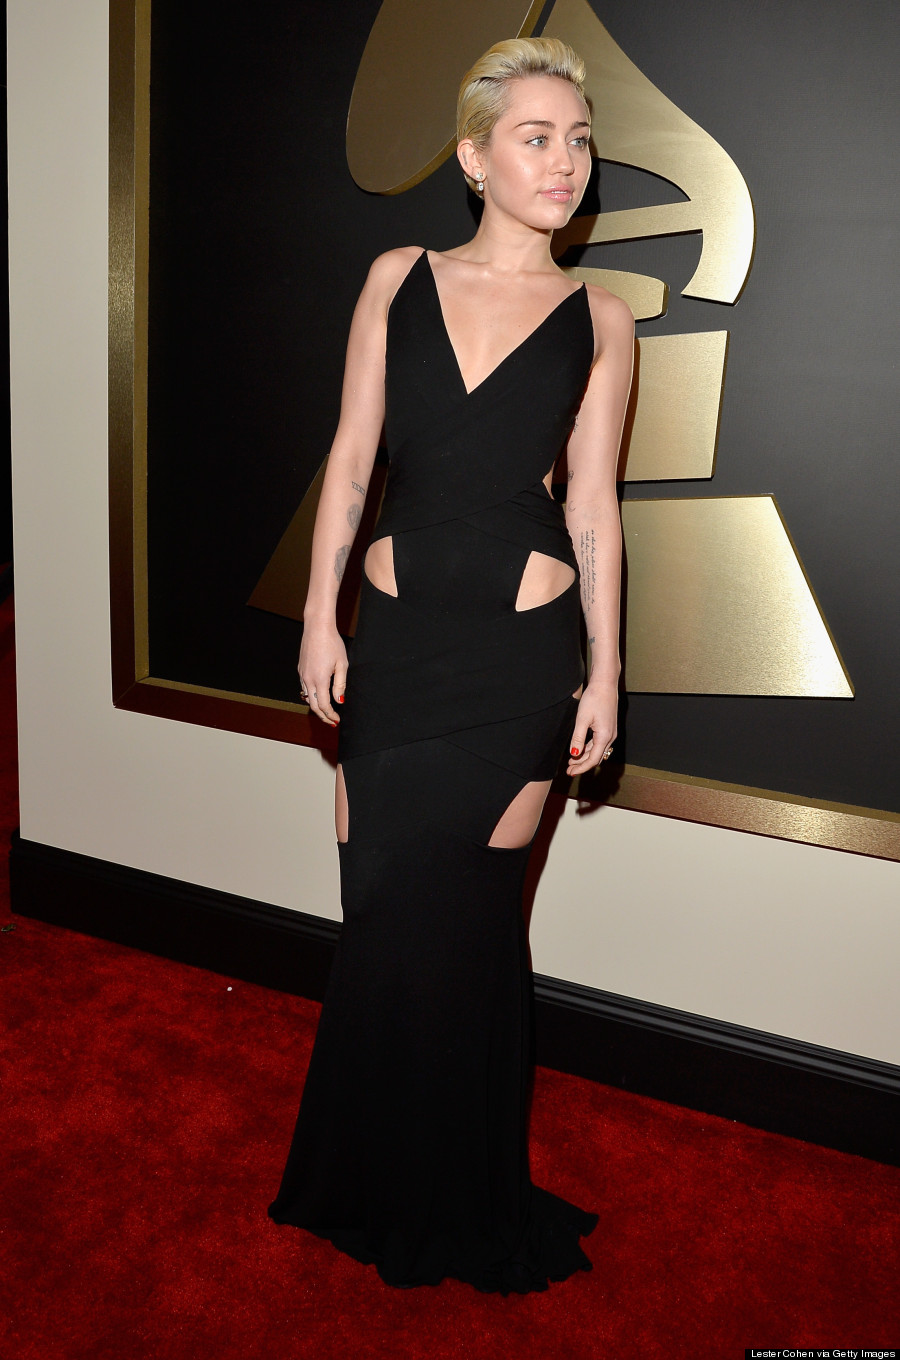 miley cyrus grammys 2015 dress is ridiculously sexy